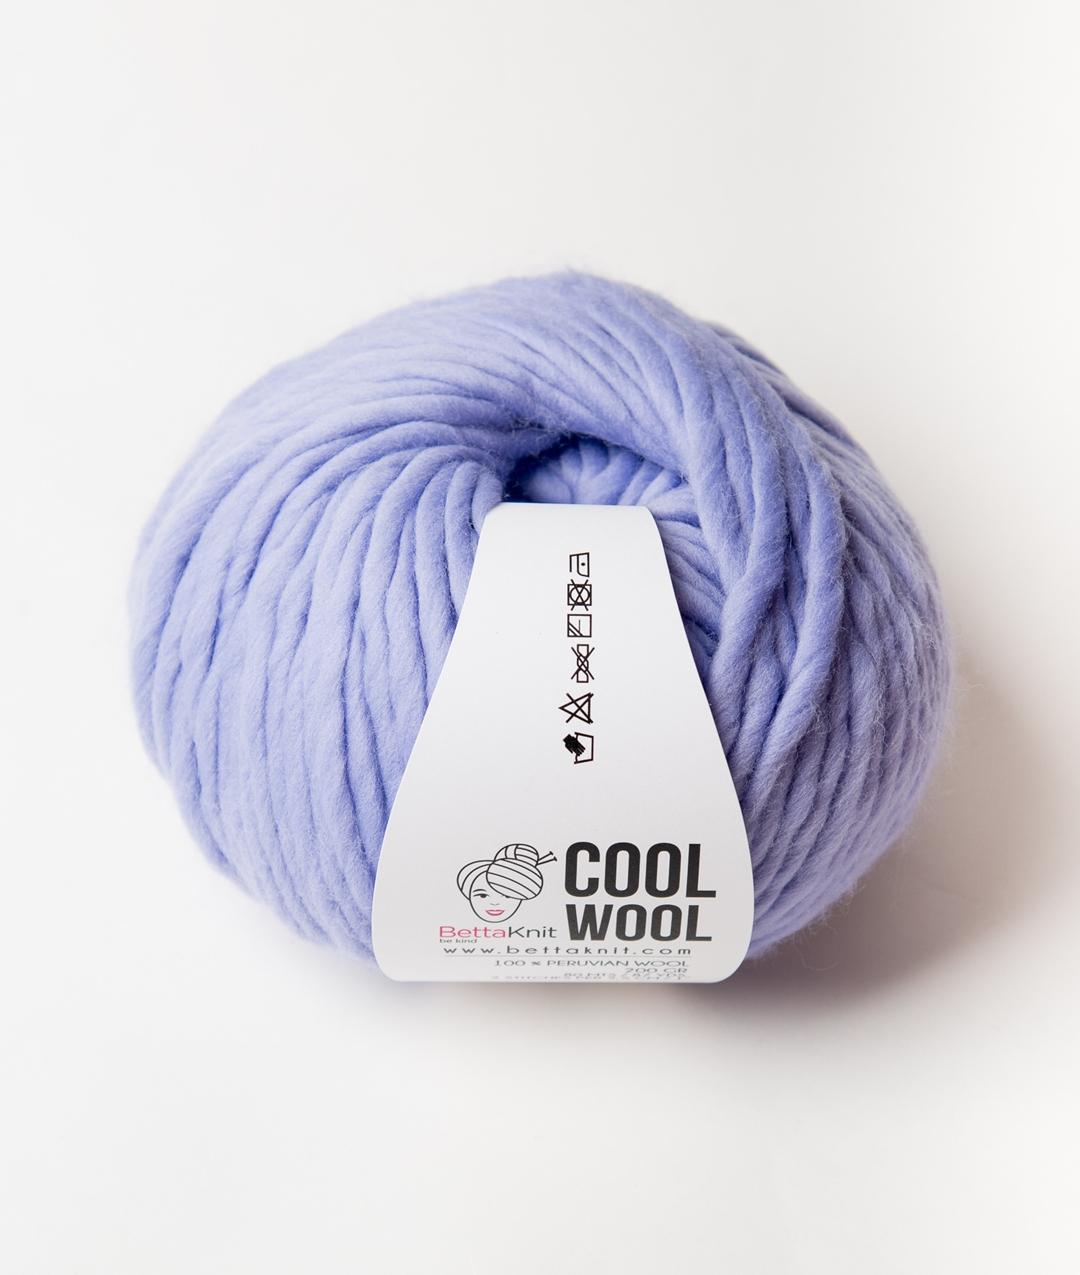 Lana - Filati - Cool Wool - 1